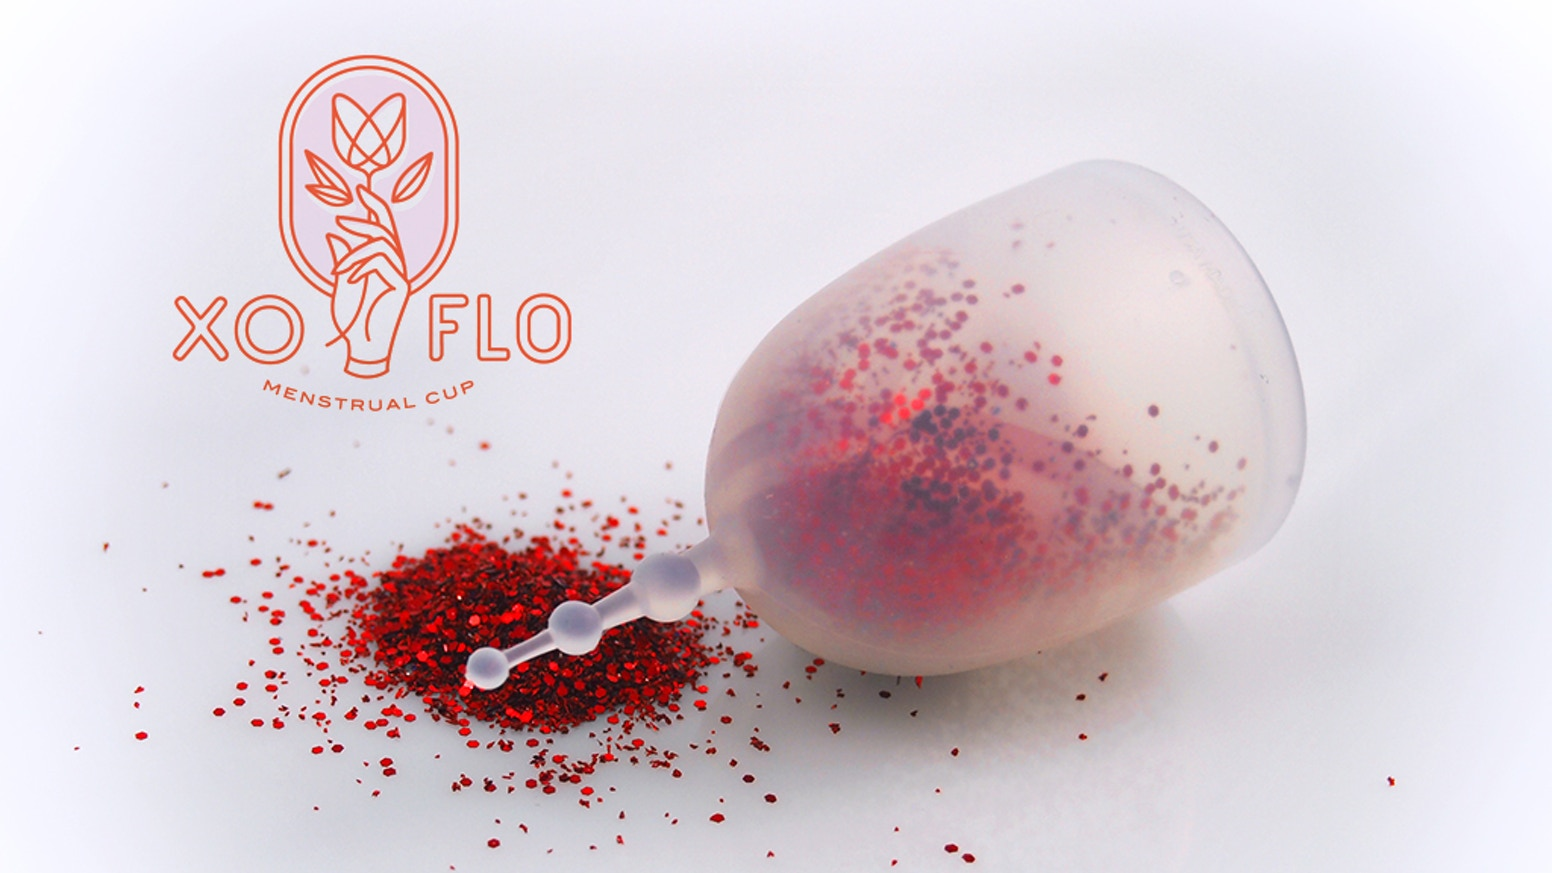 Now available: XO Flo Mini is an innovative new menstrual cup made for young people & those who prefer a slimmer fit. Buy one, give one!